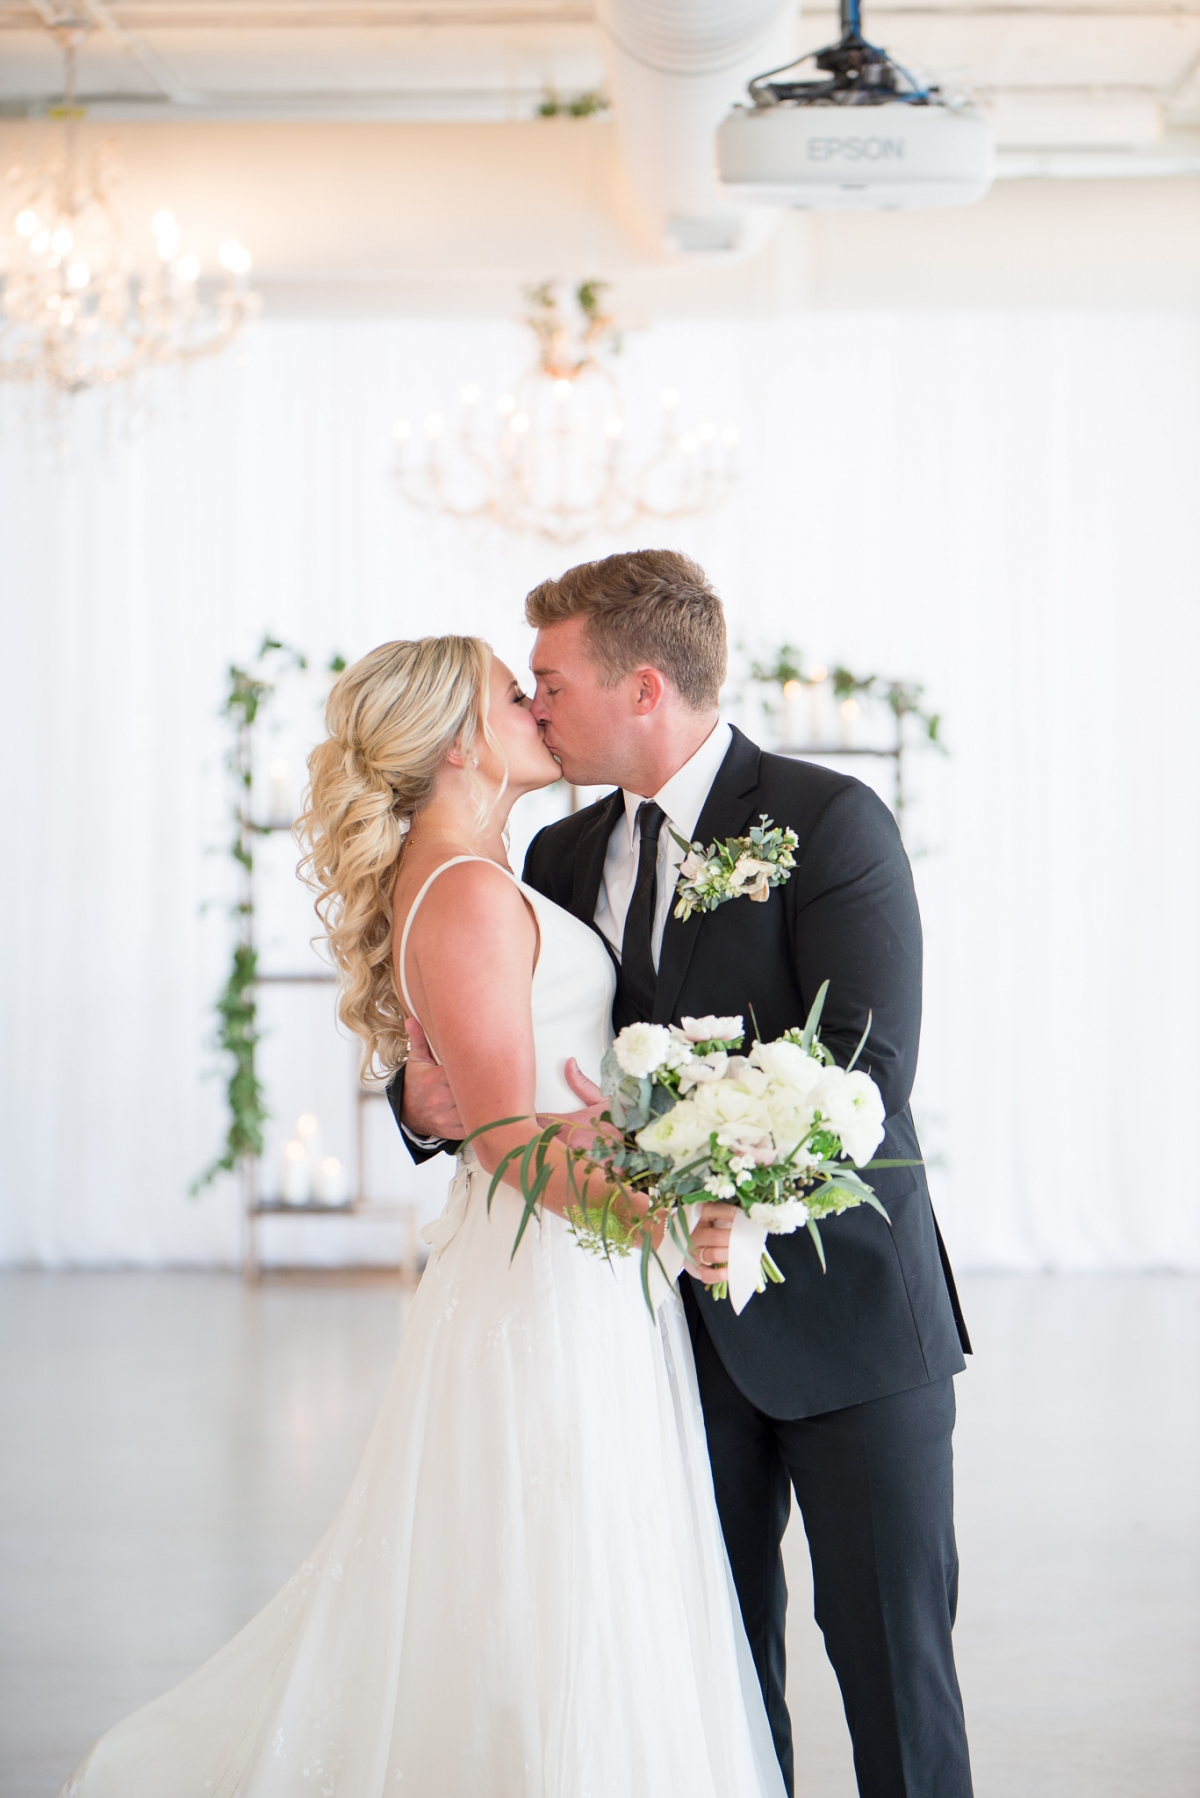 Editorial Wedding Room 1520 Chicago Il 2020 5385